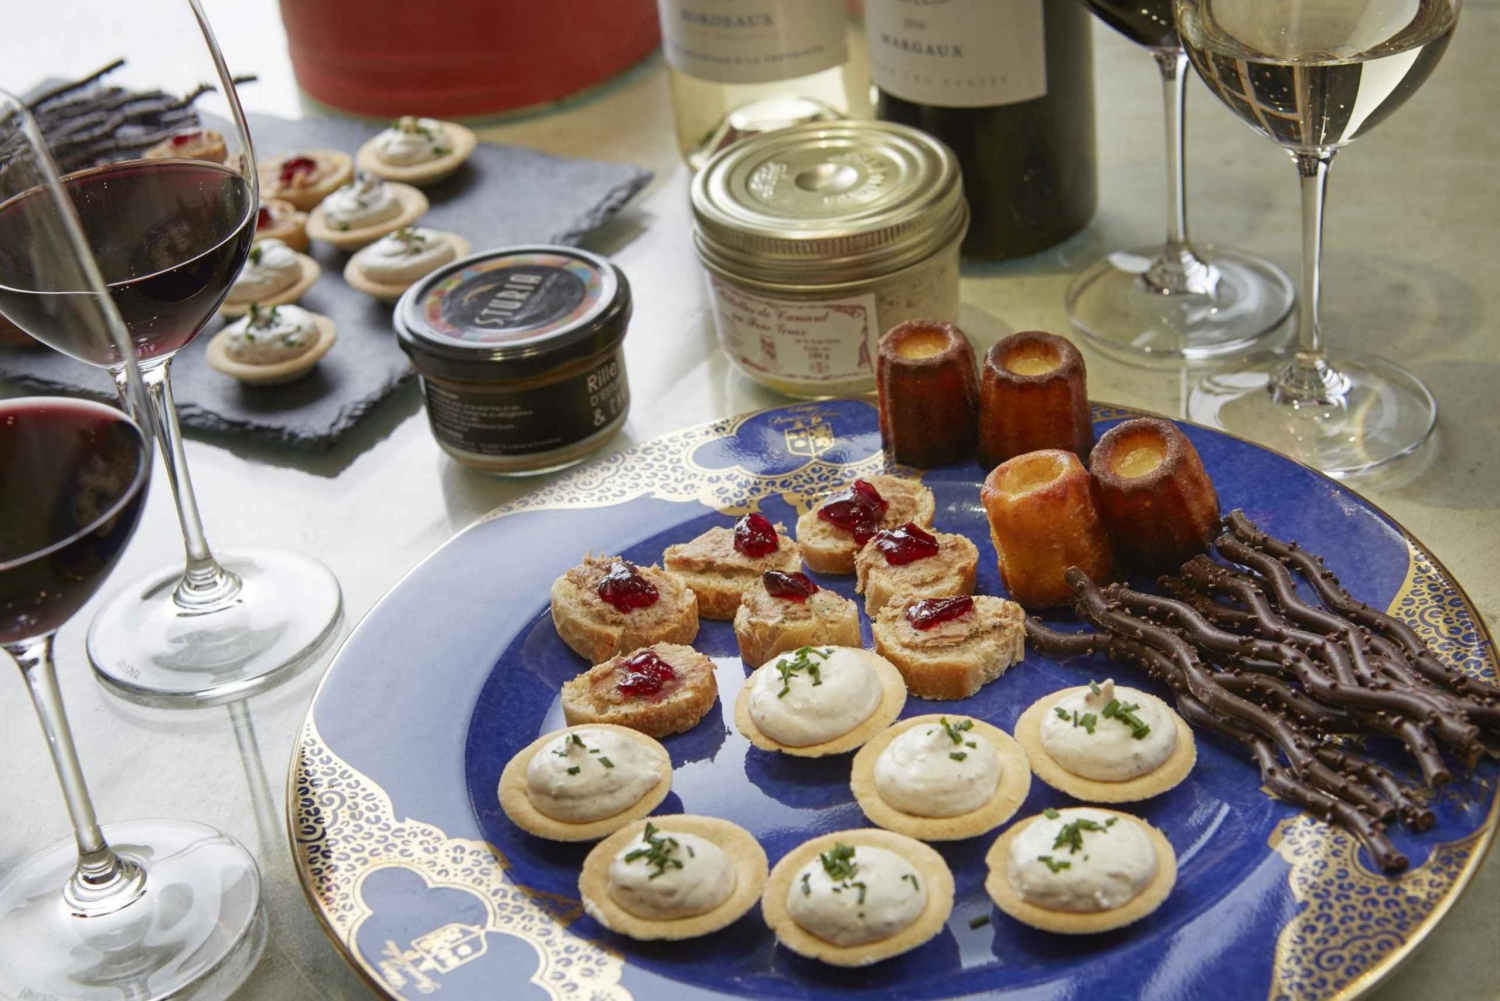 Margaux Wine Chateaux Tour with Tastings and Lunch